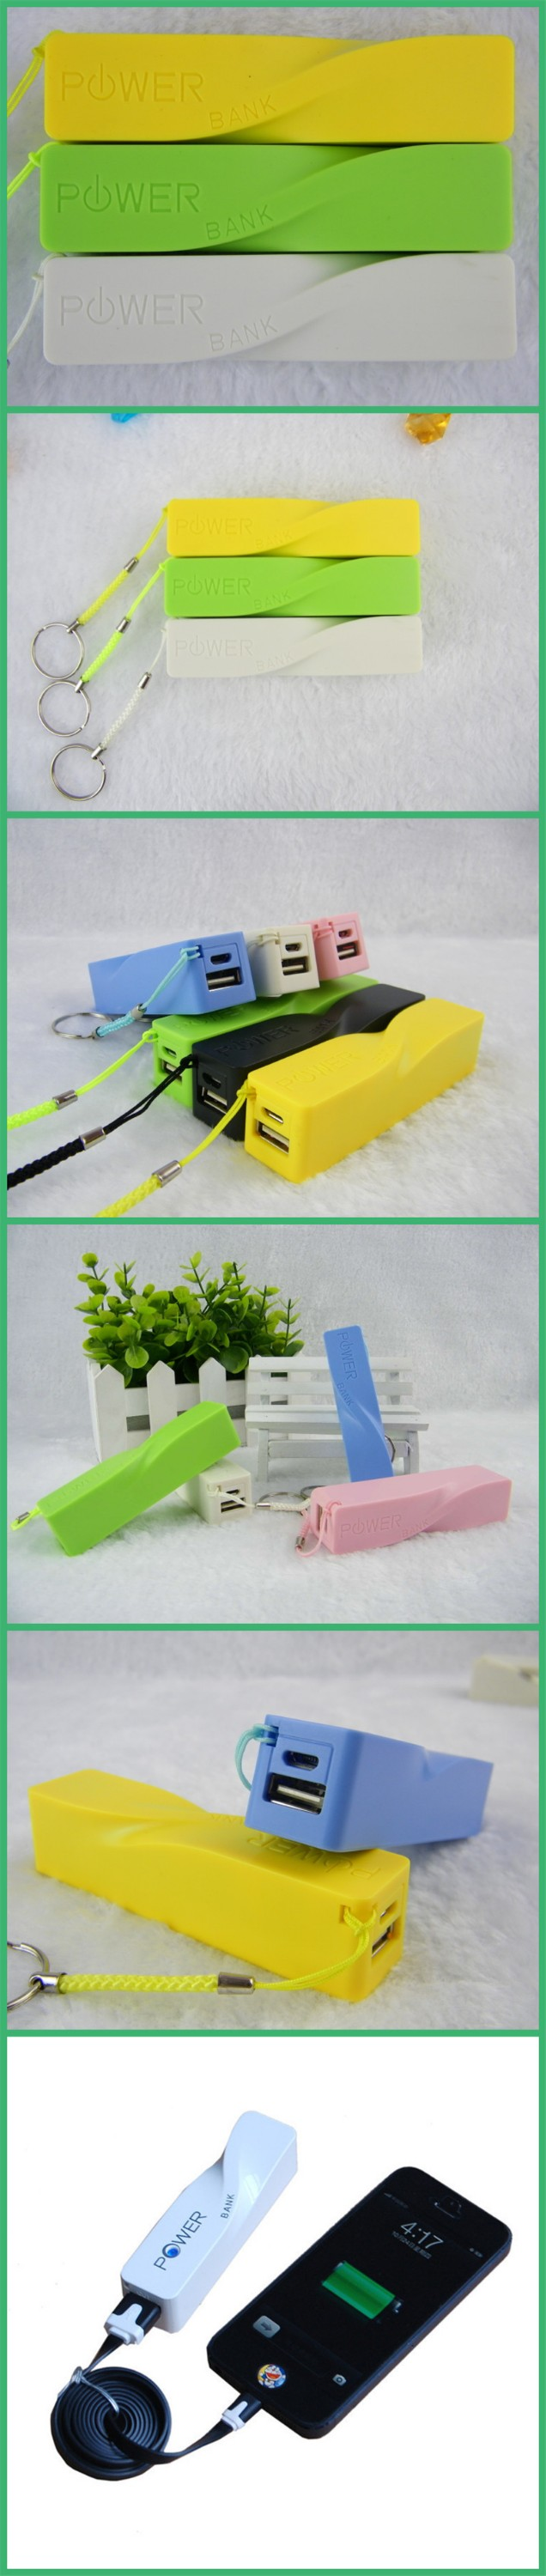 New Stylish Keychain Portable power bank 5000mah Suitable for Businessman Model JEC-004PB